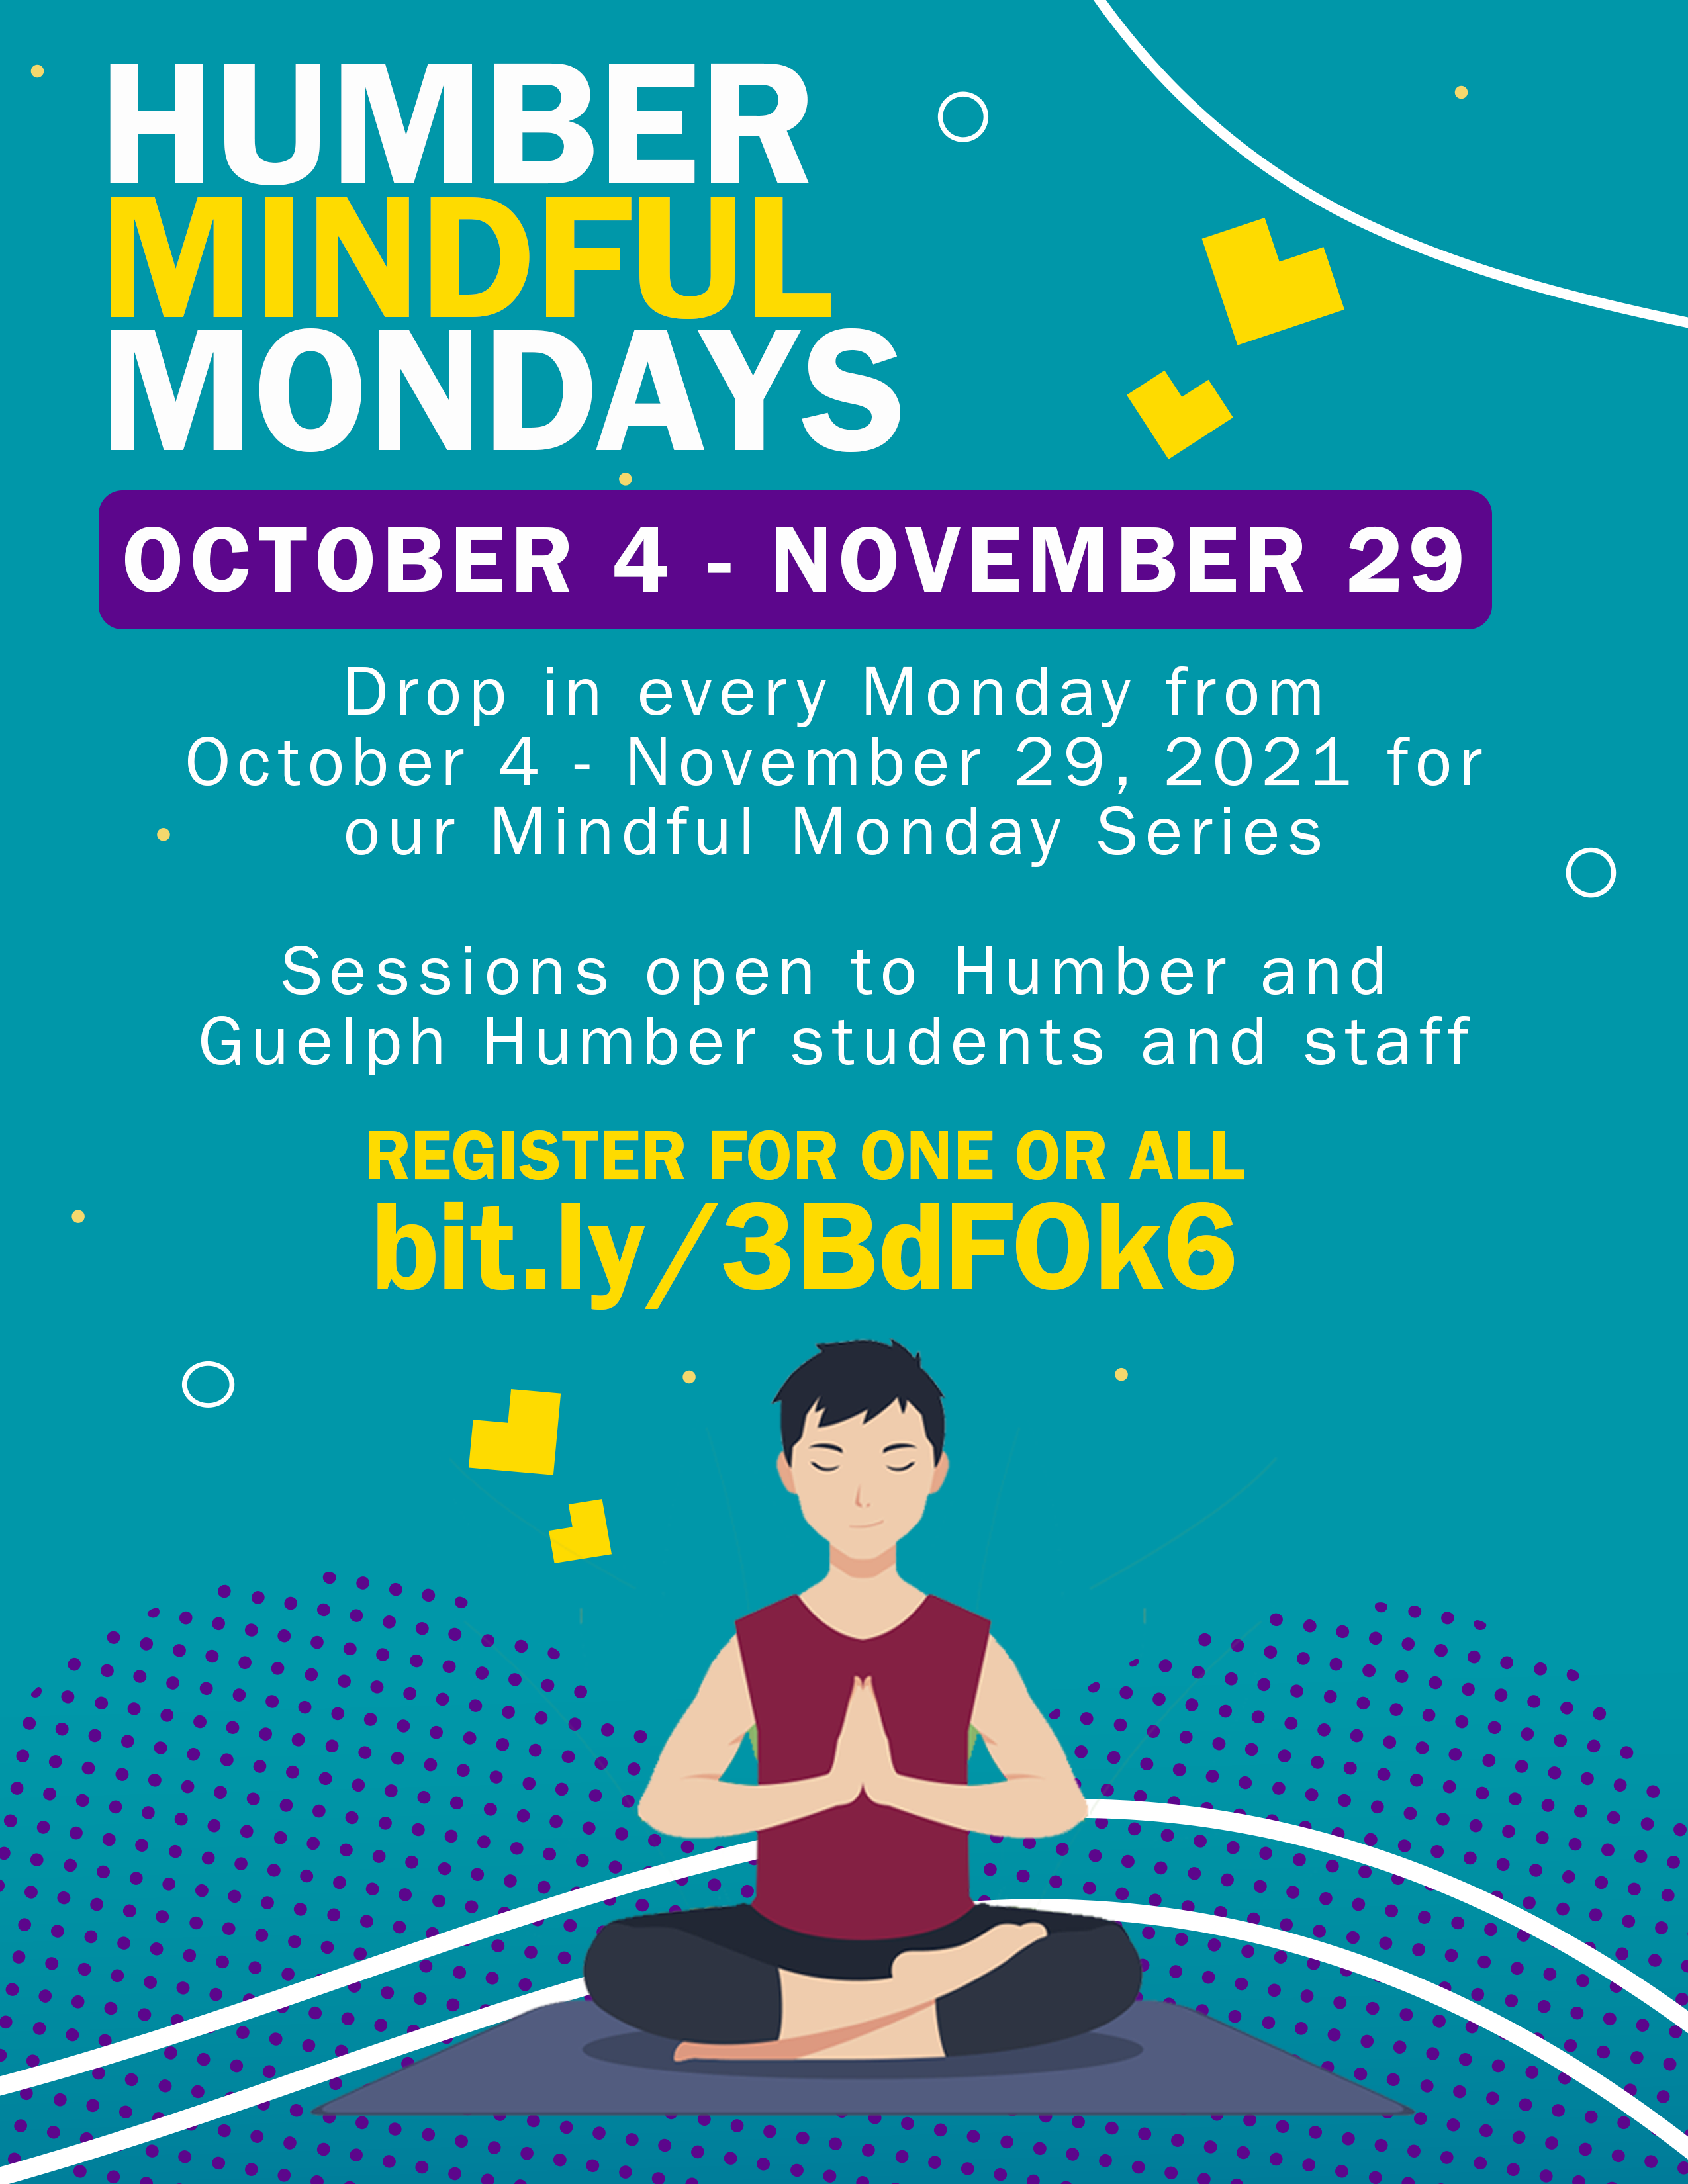 Various sessions with dates and times for Humber Mindful Mondays Series